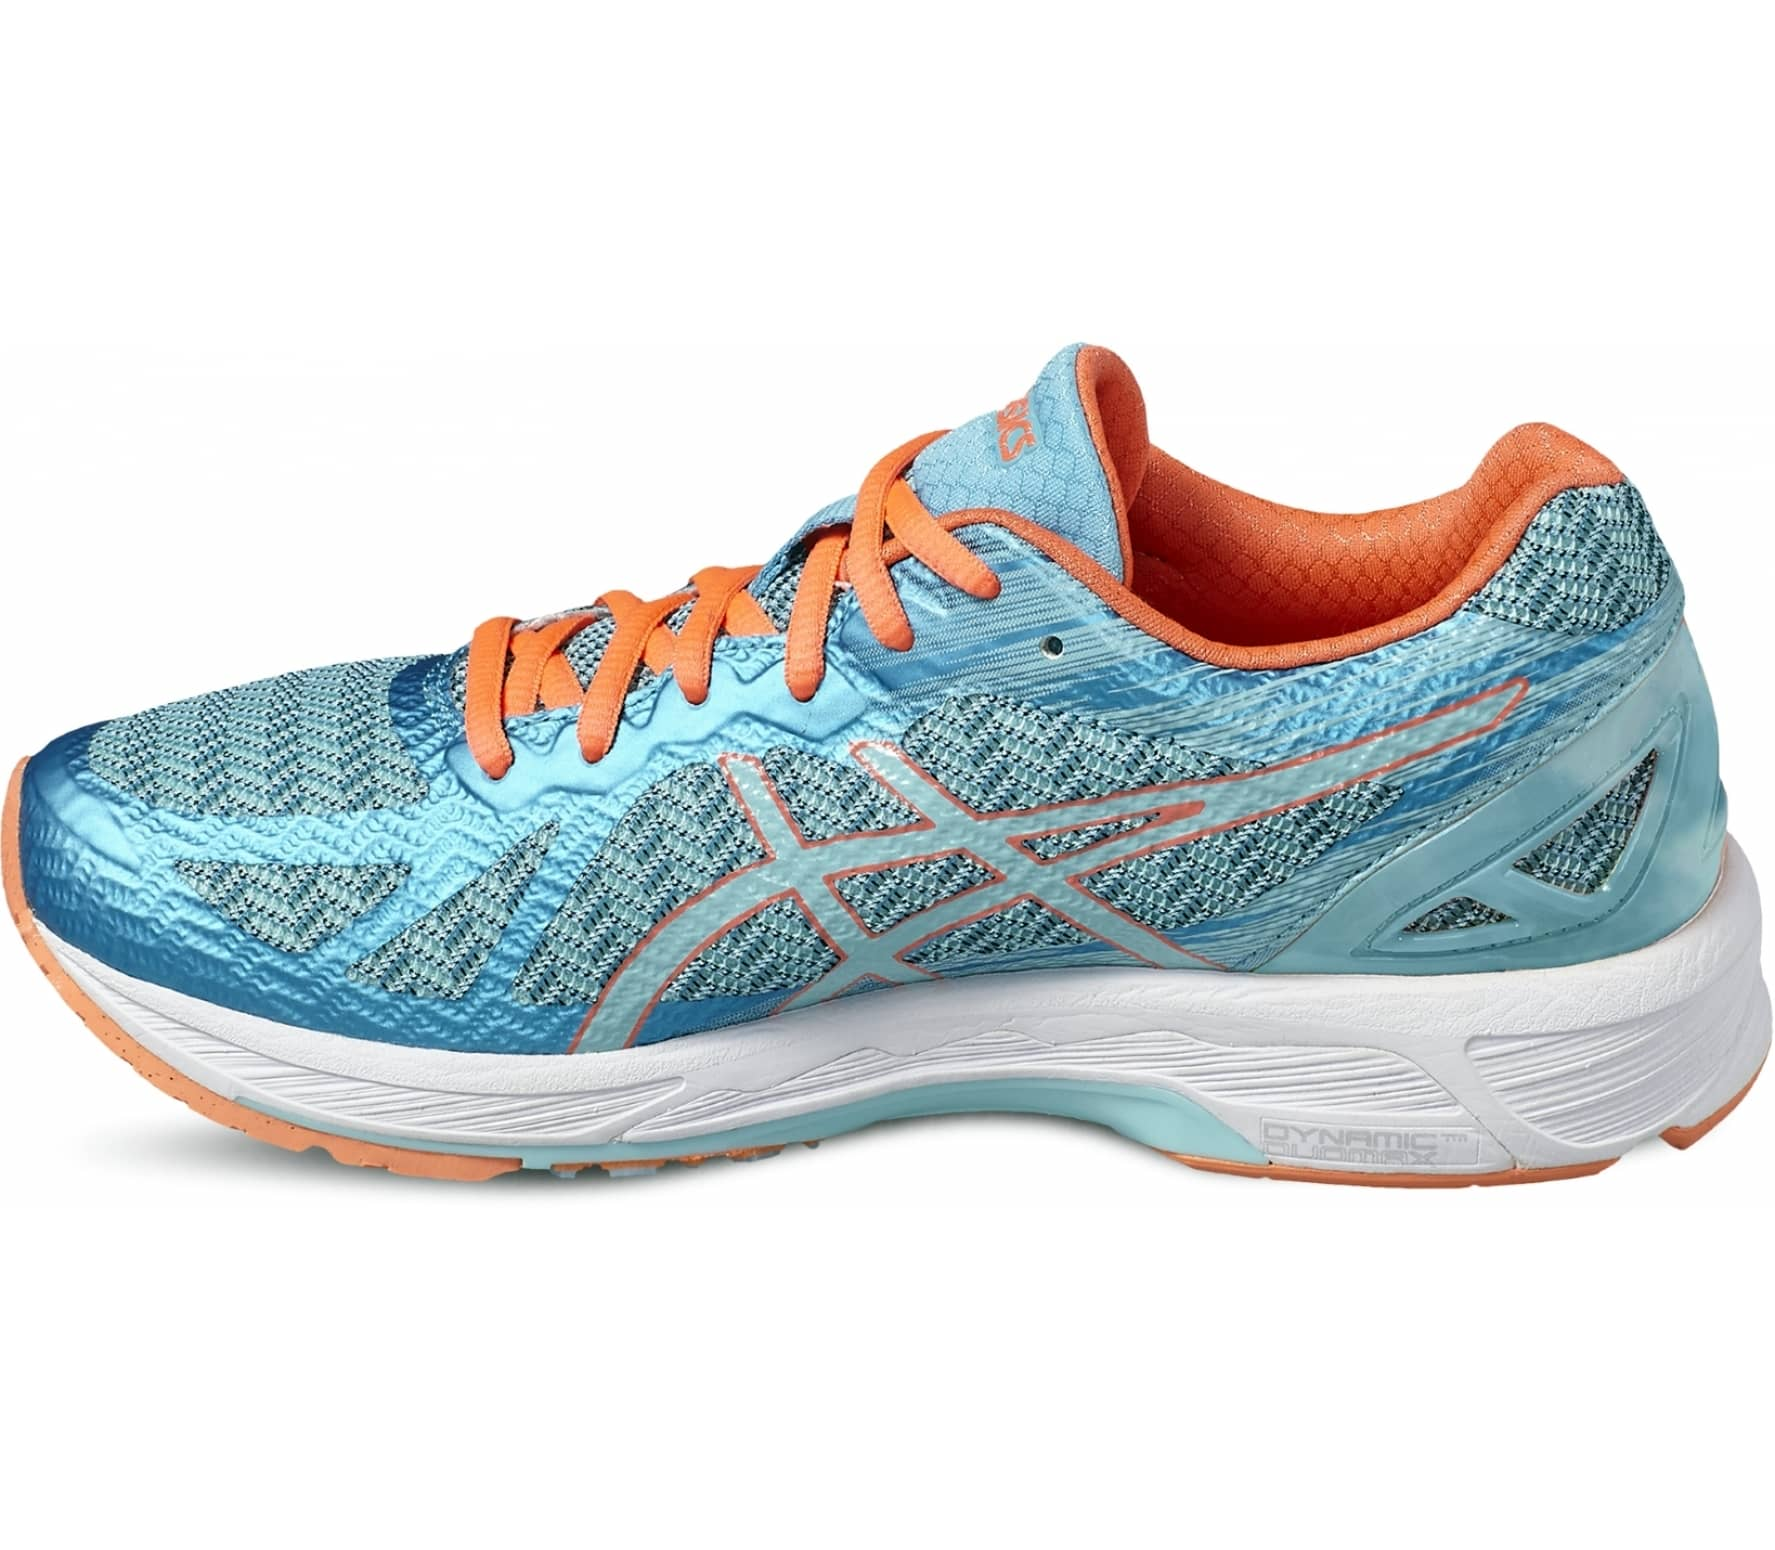 ASICS - Gel-DS Trainer 22 women's running shoes (blue/orange)